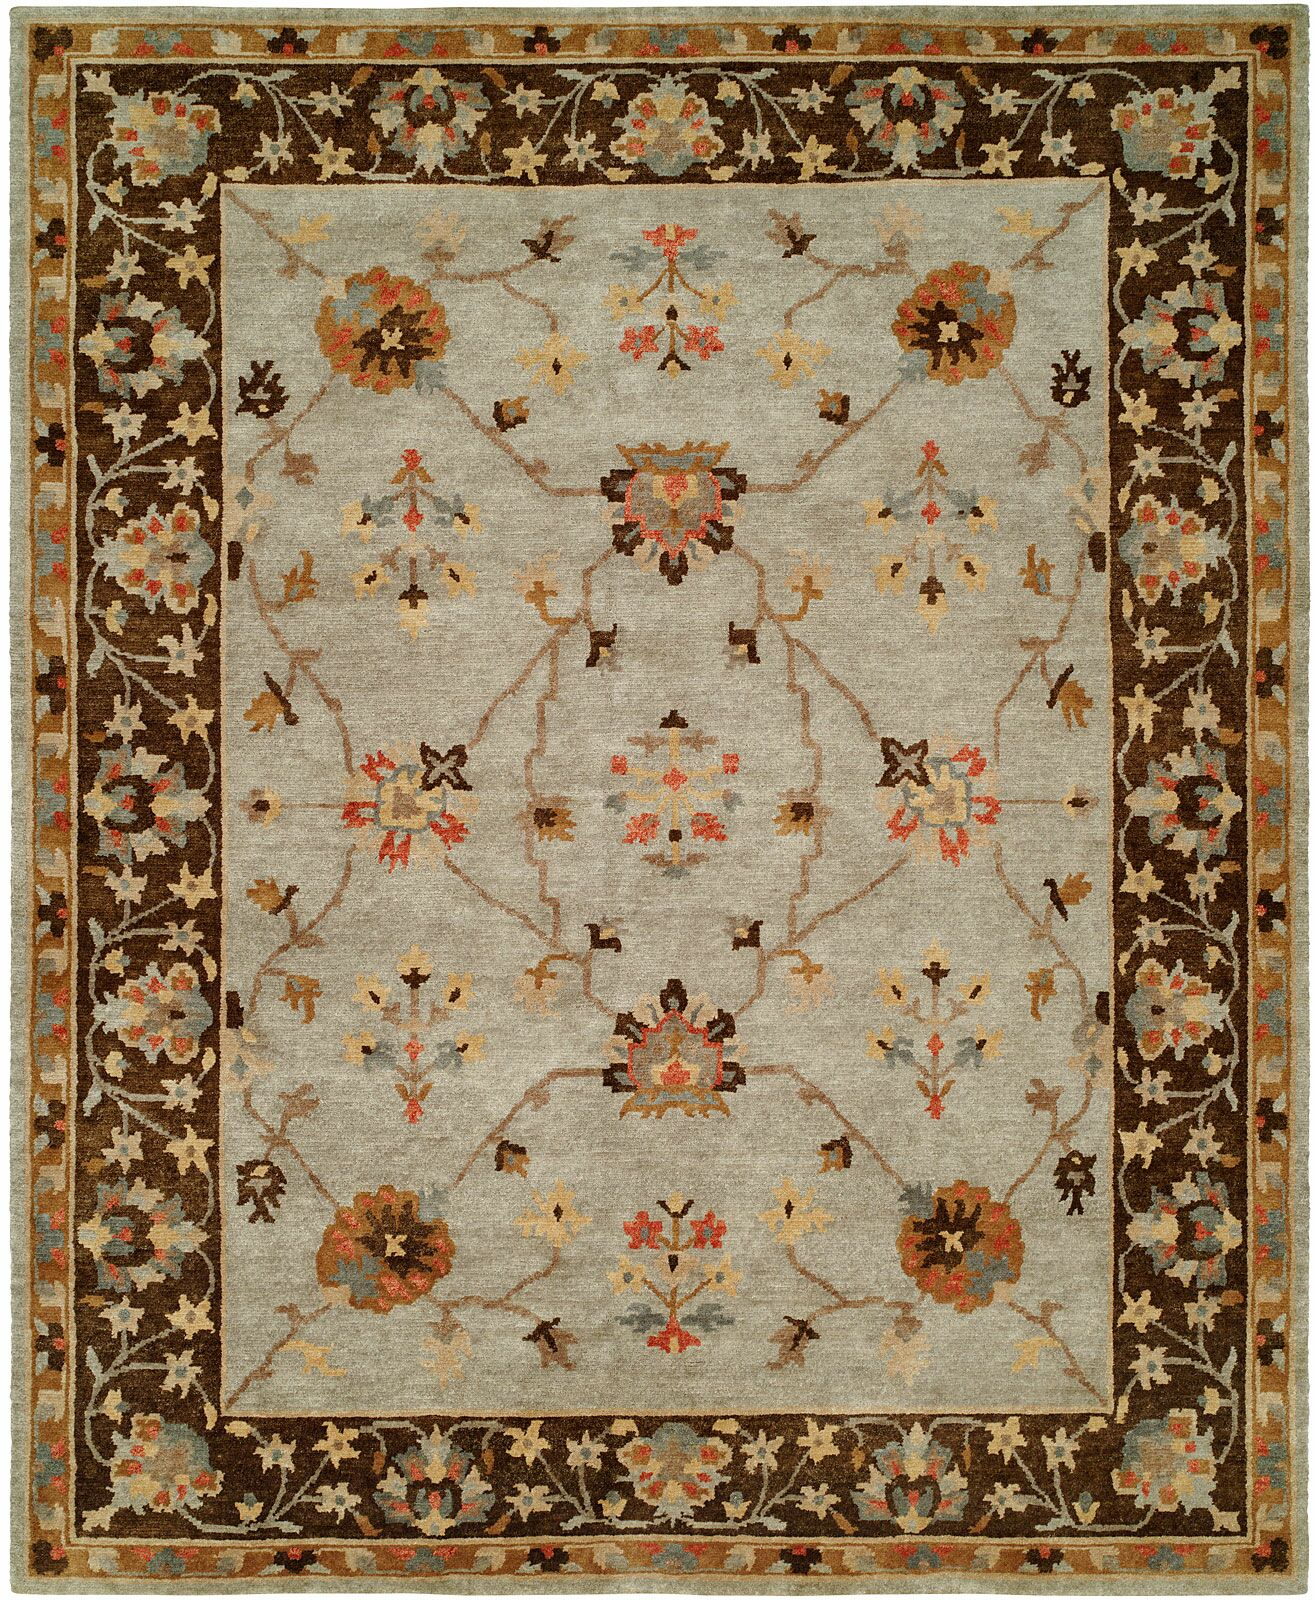 Christie Hand Knotted Wool Gray/Brown Area Rug Rug Size: Rectangle 2' x 3'